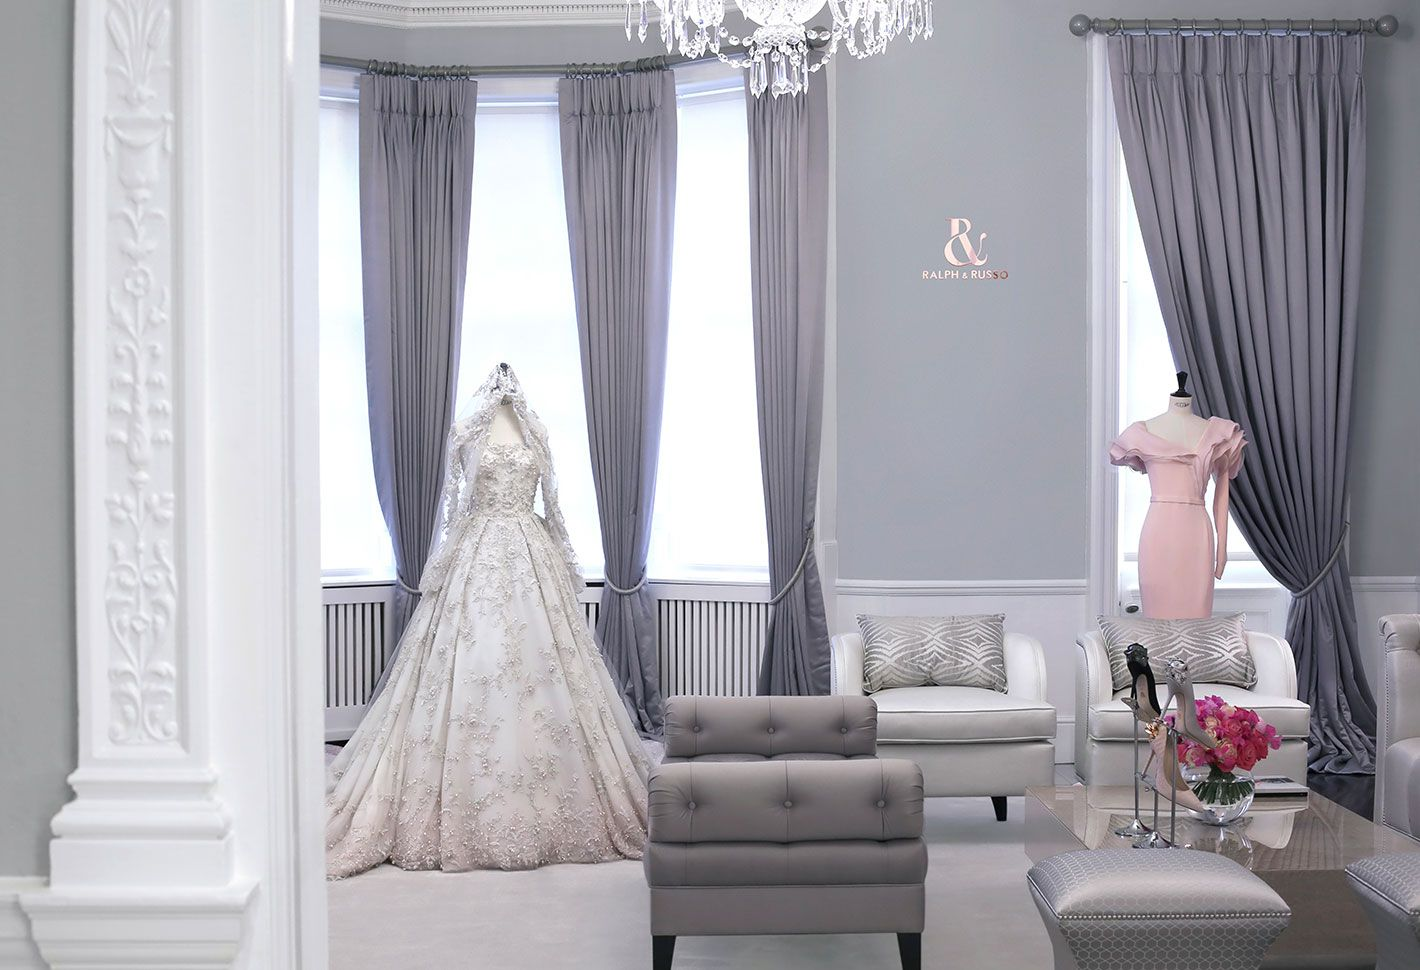 Mobili Russo ~ London maison boutiques ralph russo material girl